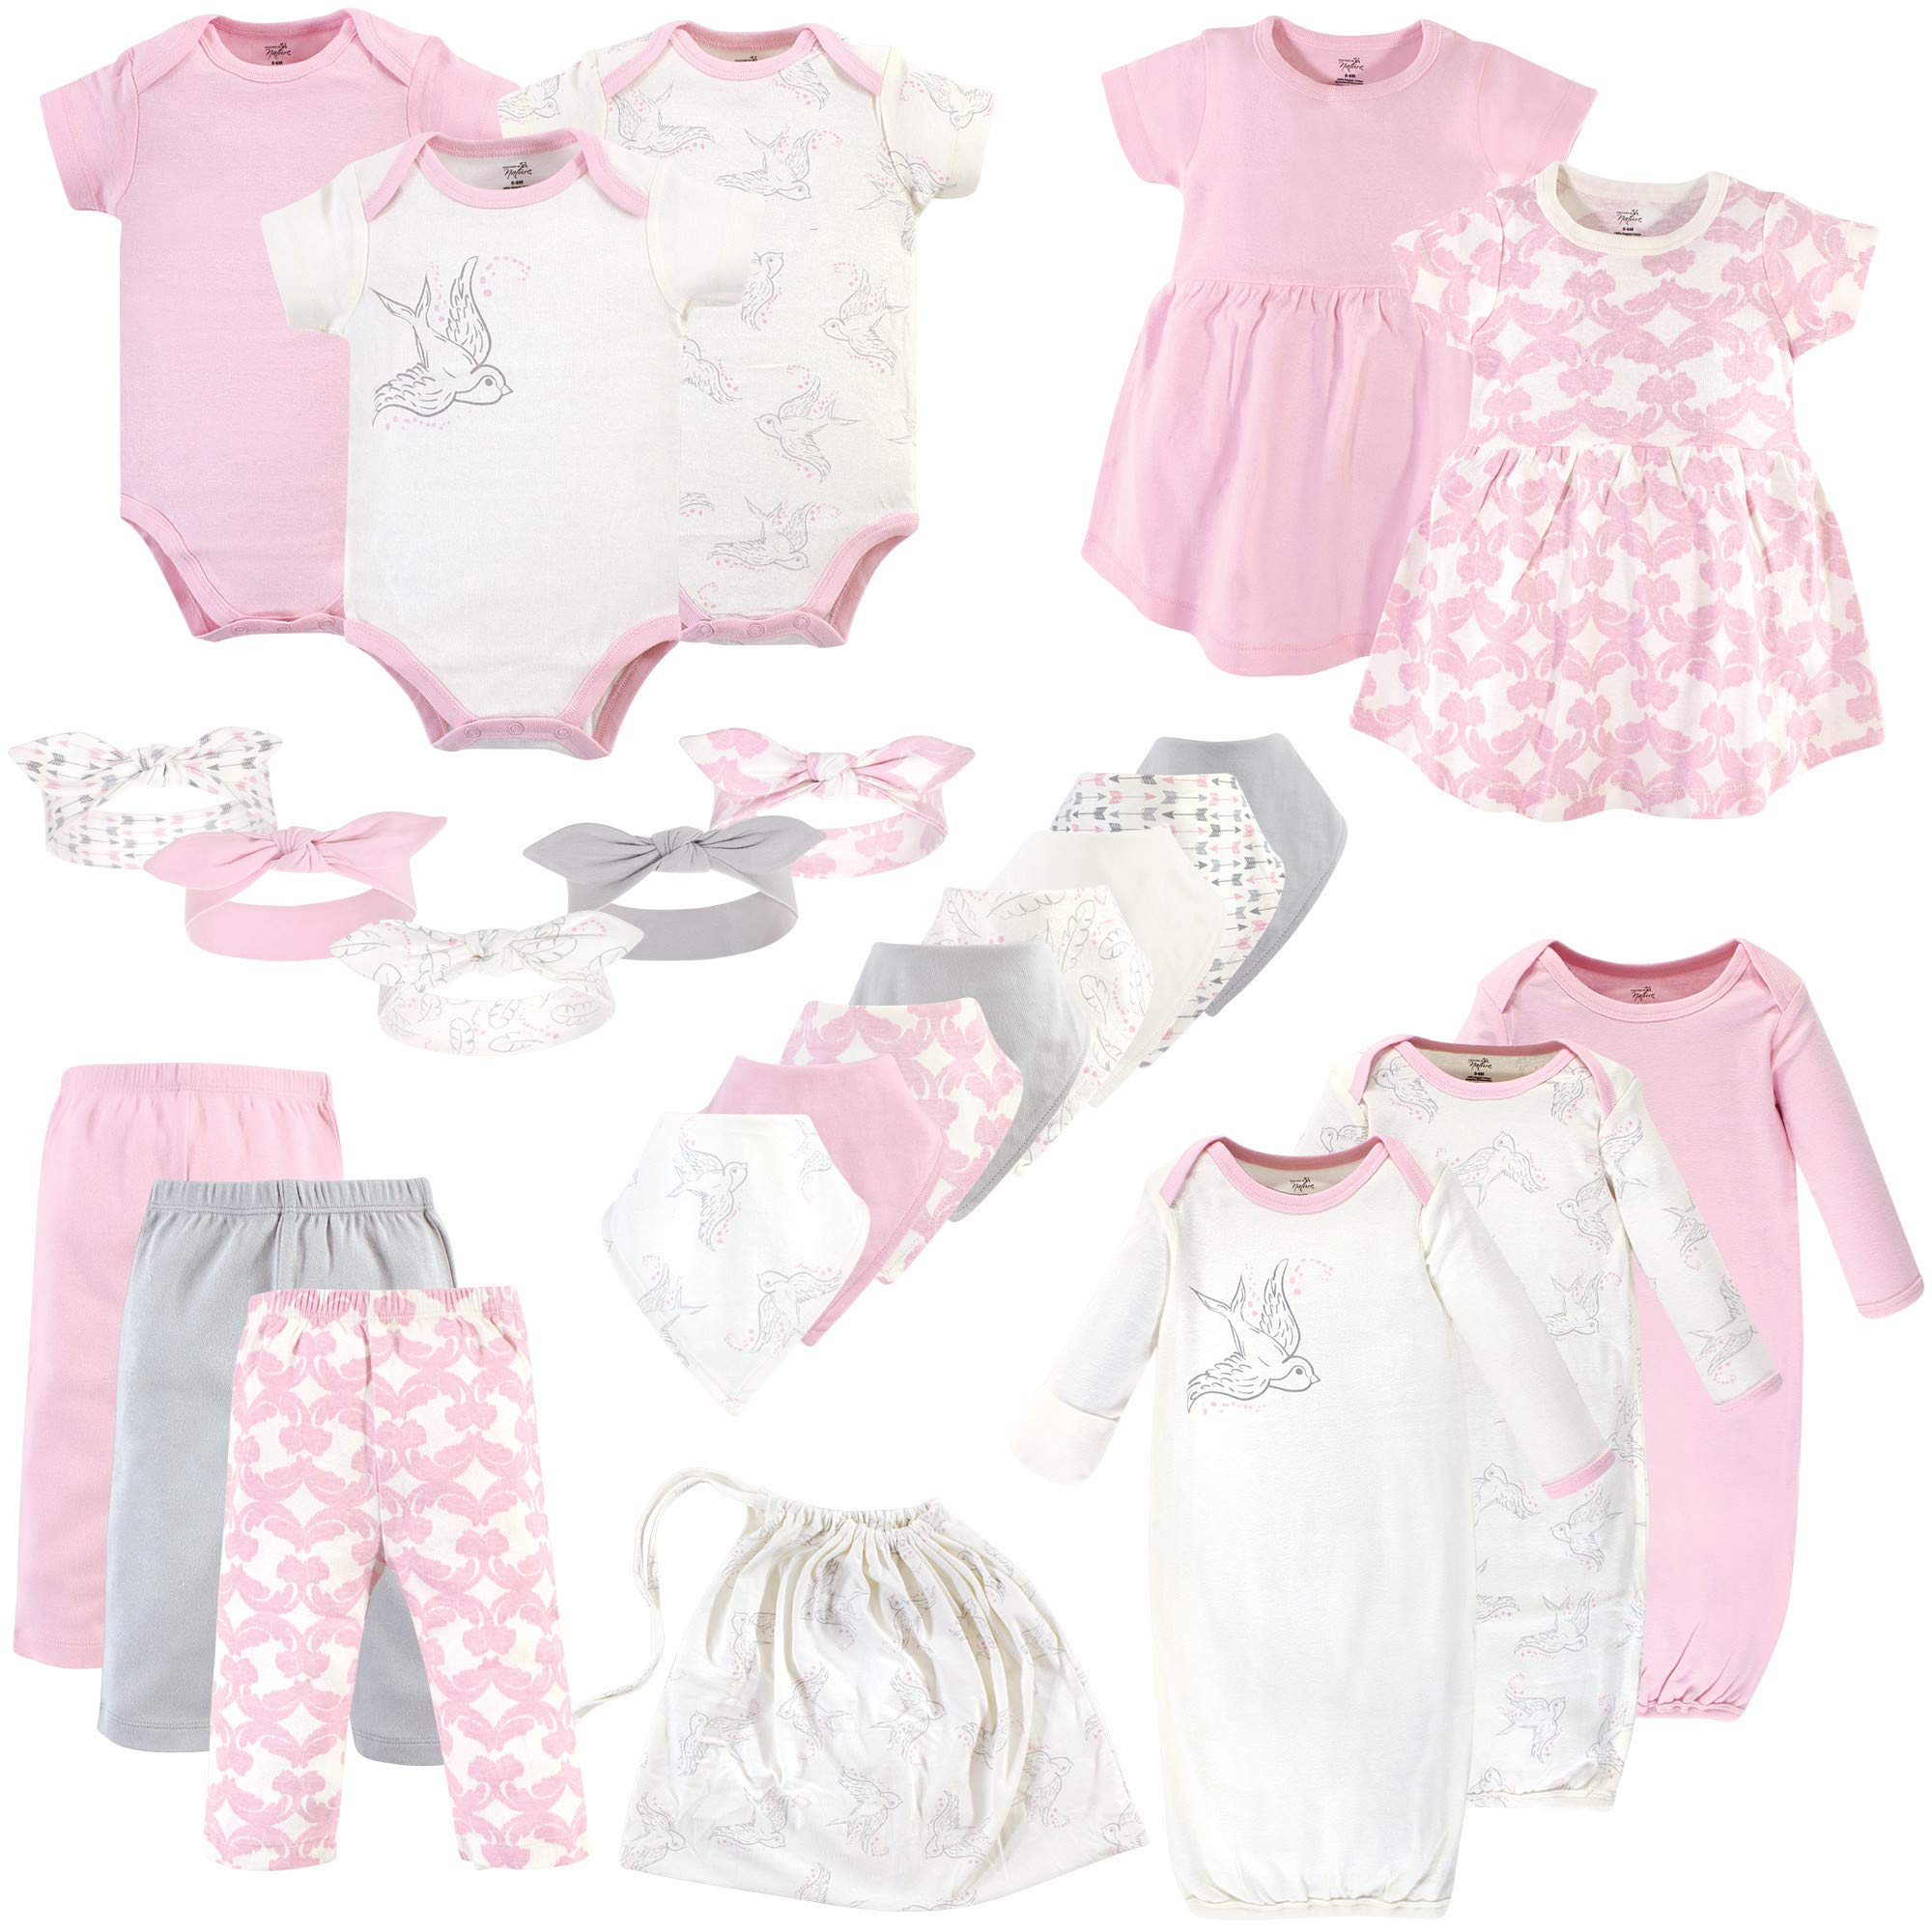 Touched by Nature Baby Organic Layette Set, Bird 25 Piece, 0-6 Months (6M) by Touched by Nature